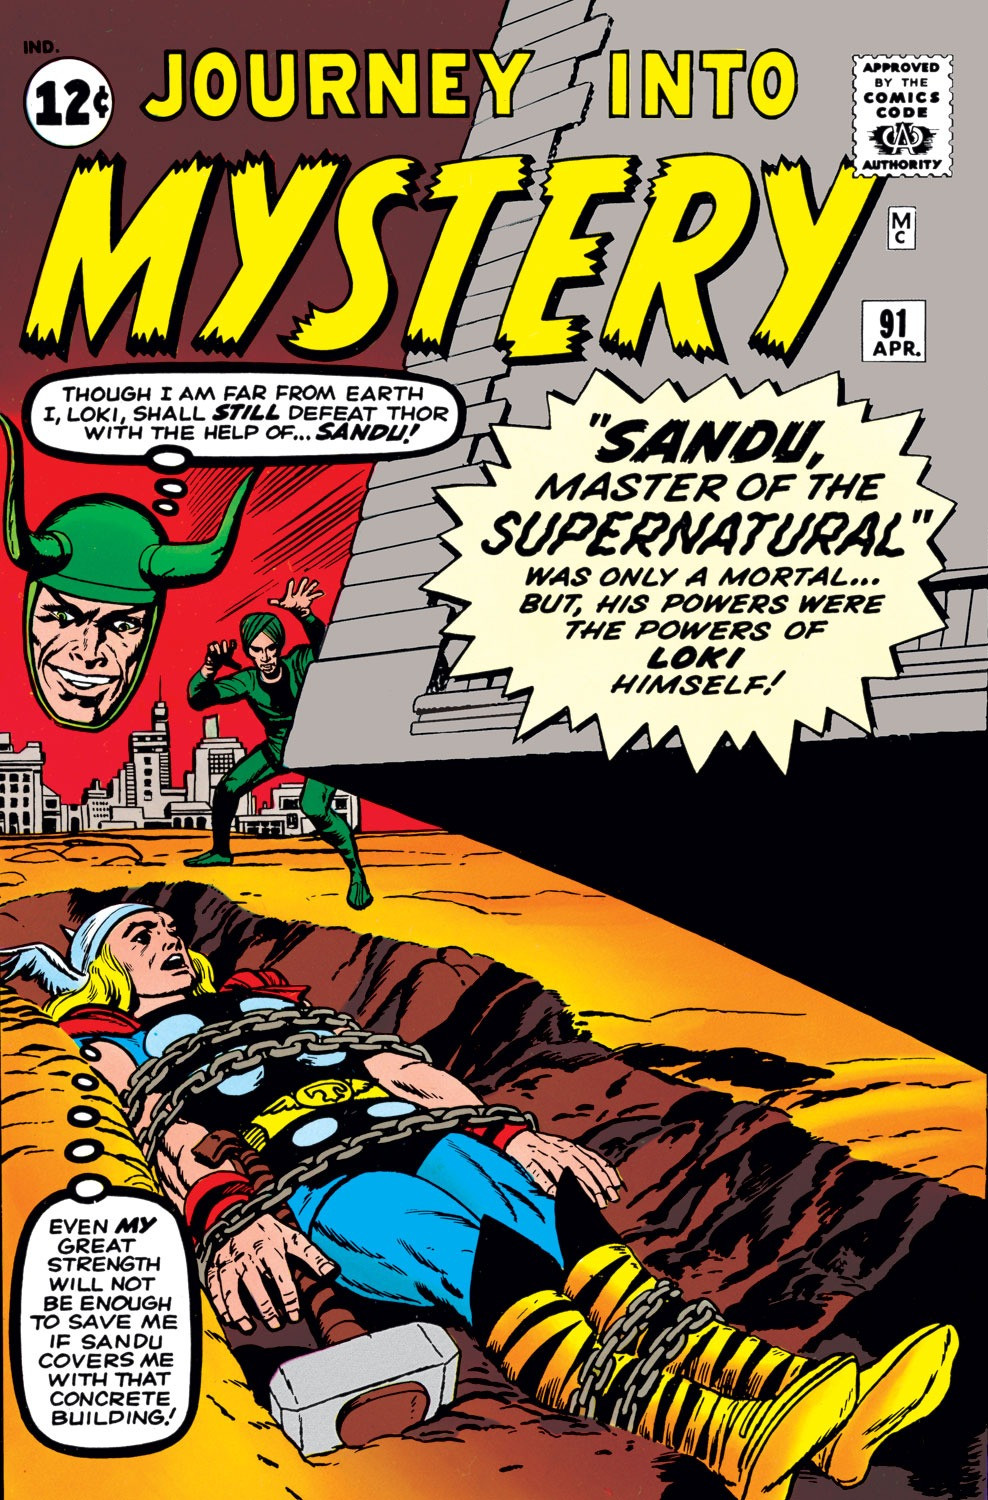 Journey into Mystery Vol 1 91